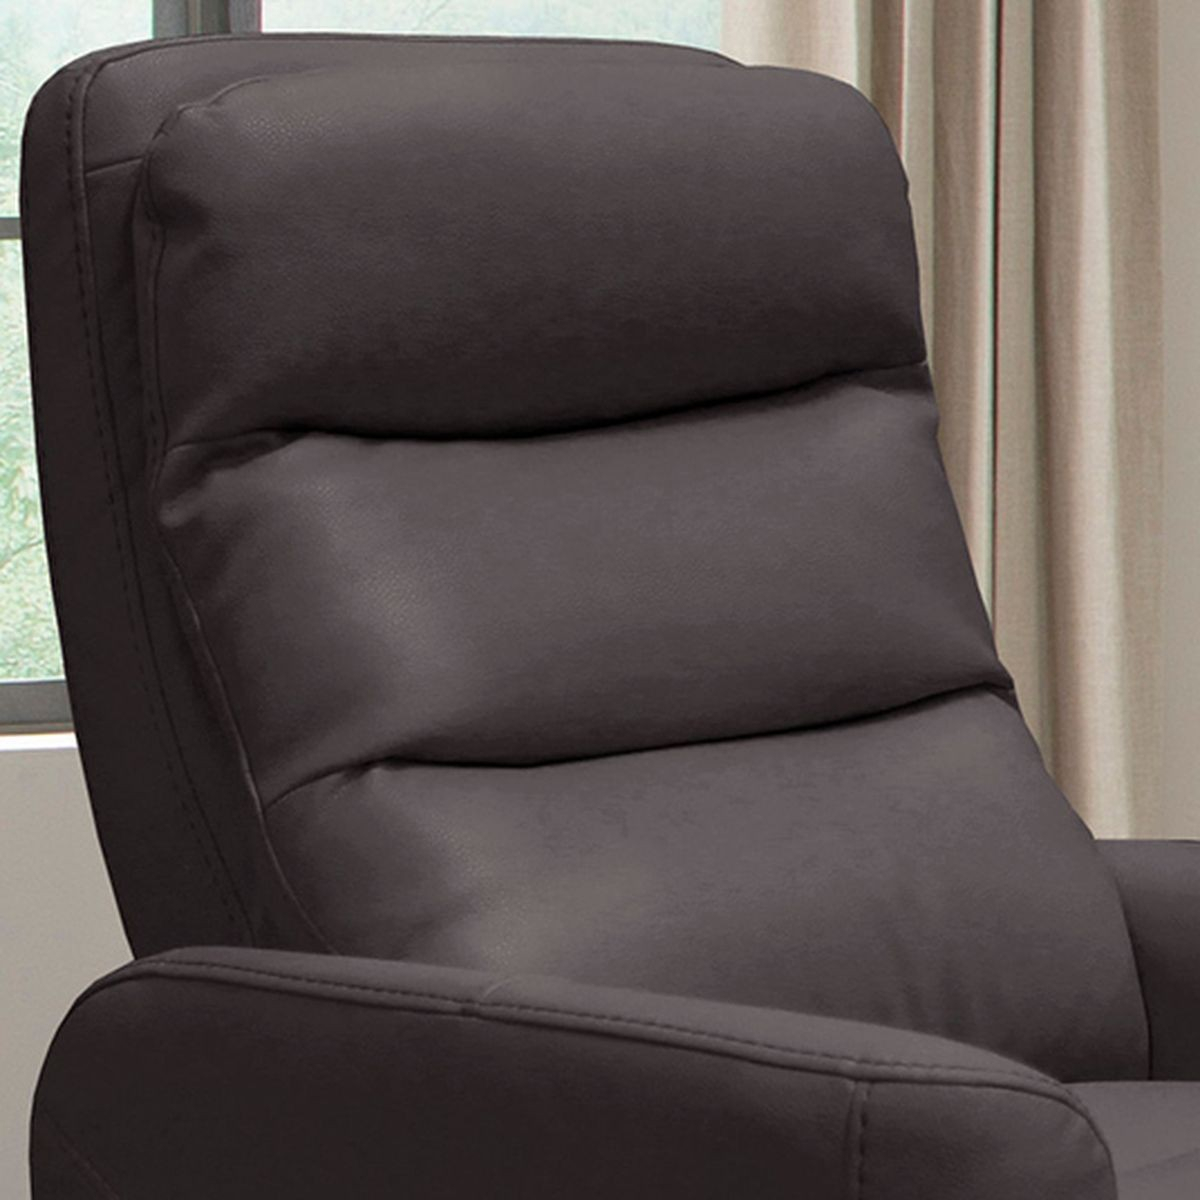 Parker Living Hercules Glider Swivel Recliner With Articulating Throughout Hercules Chocolate Swivel Glider Recliners (View 5 of 20)